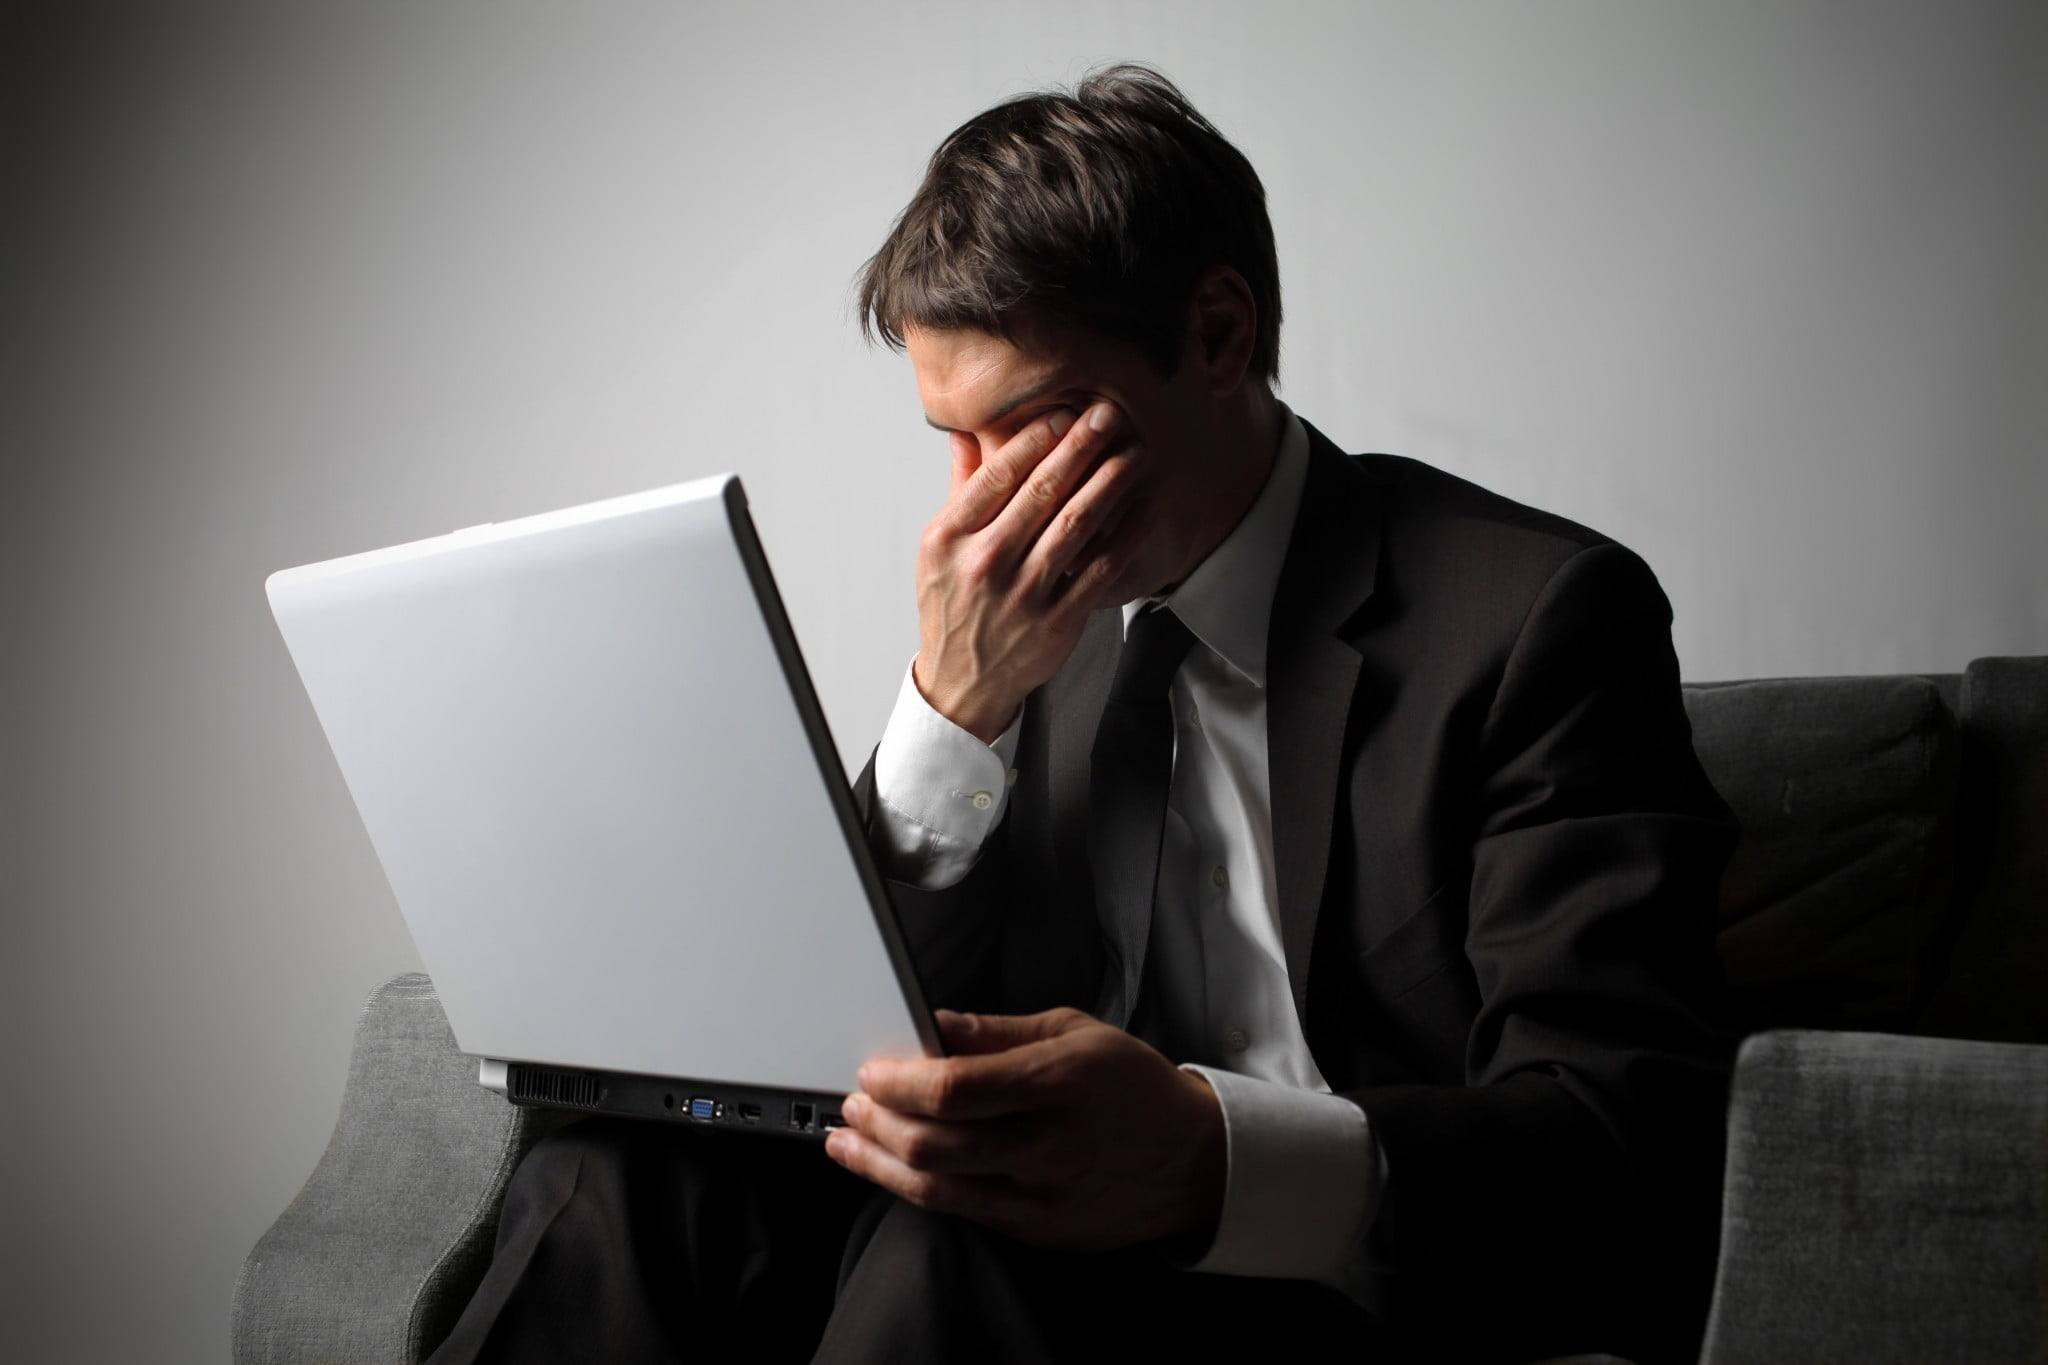 mental illness stigma: man in suit with laptop covers face